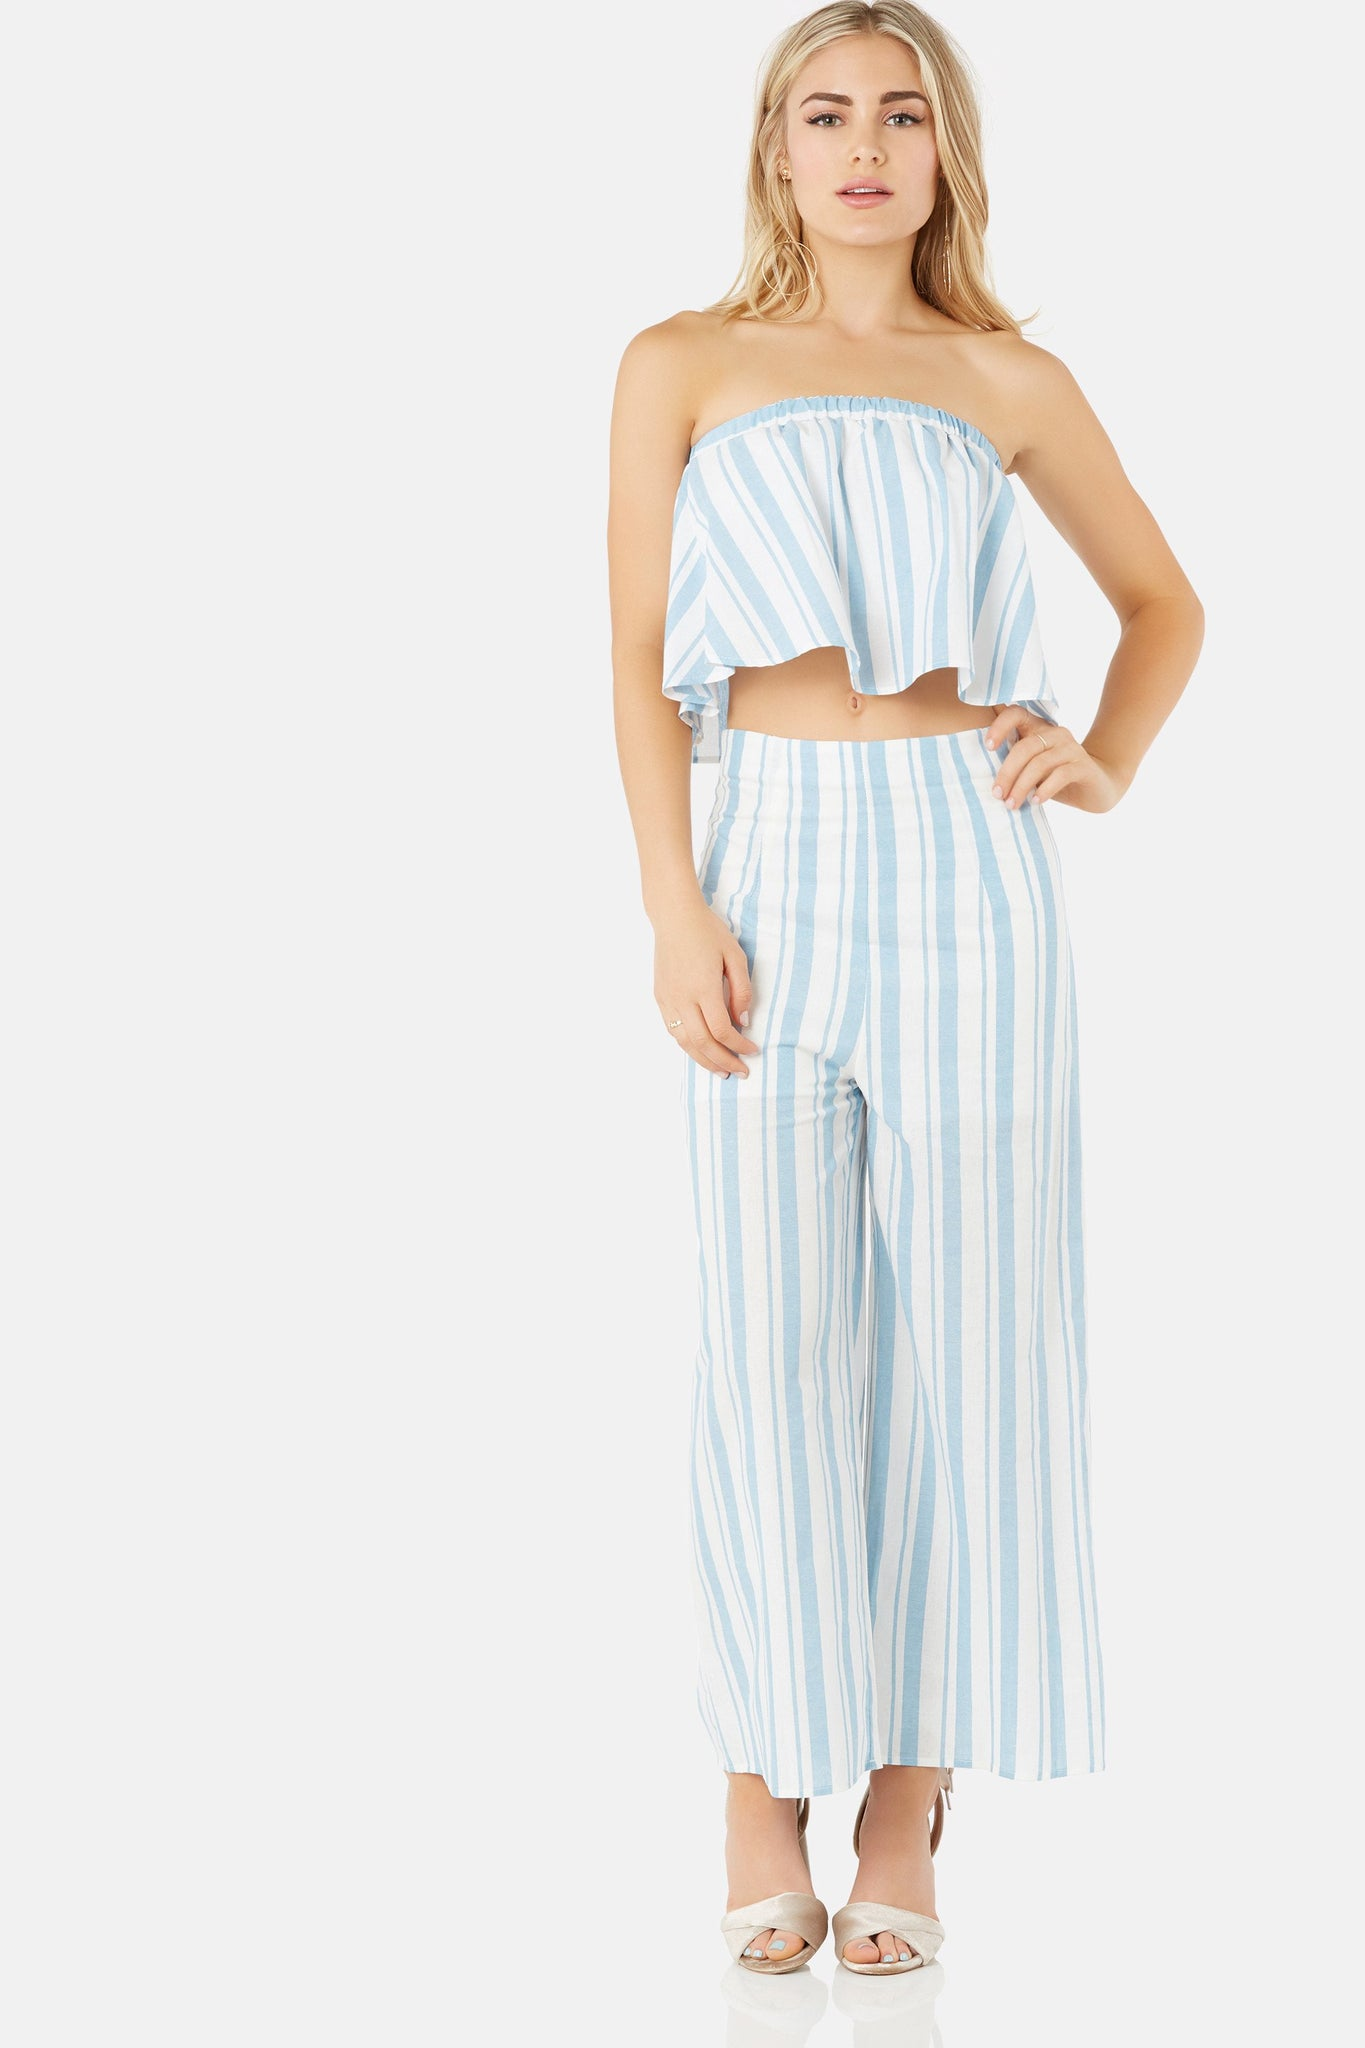 Chic high rise pants with wide leg fit. Stripe pattern all around with back zip closure.